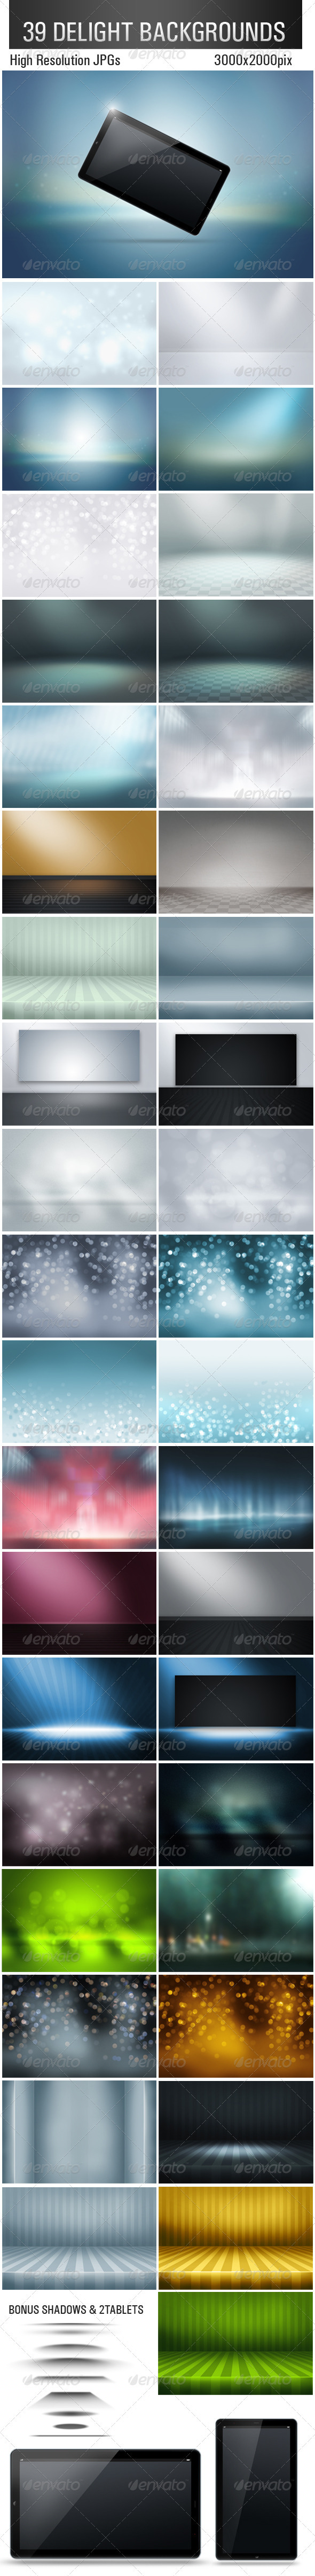 GraphicRiver 39 Delight Backgrounds 2833181